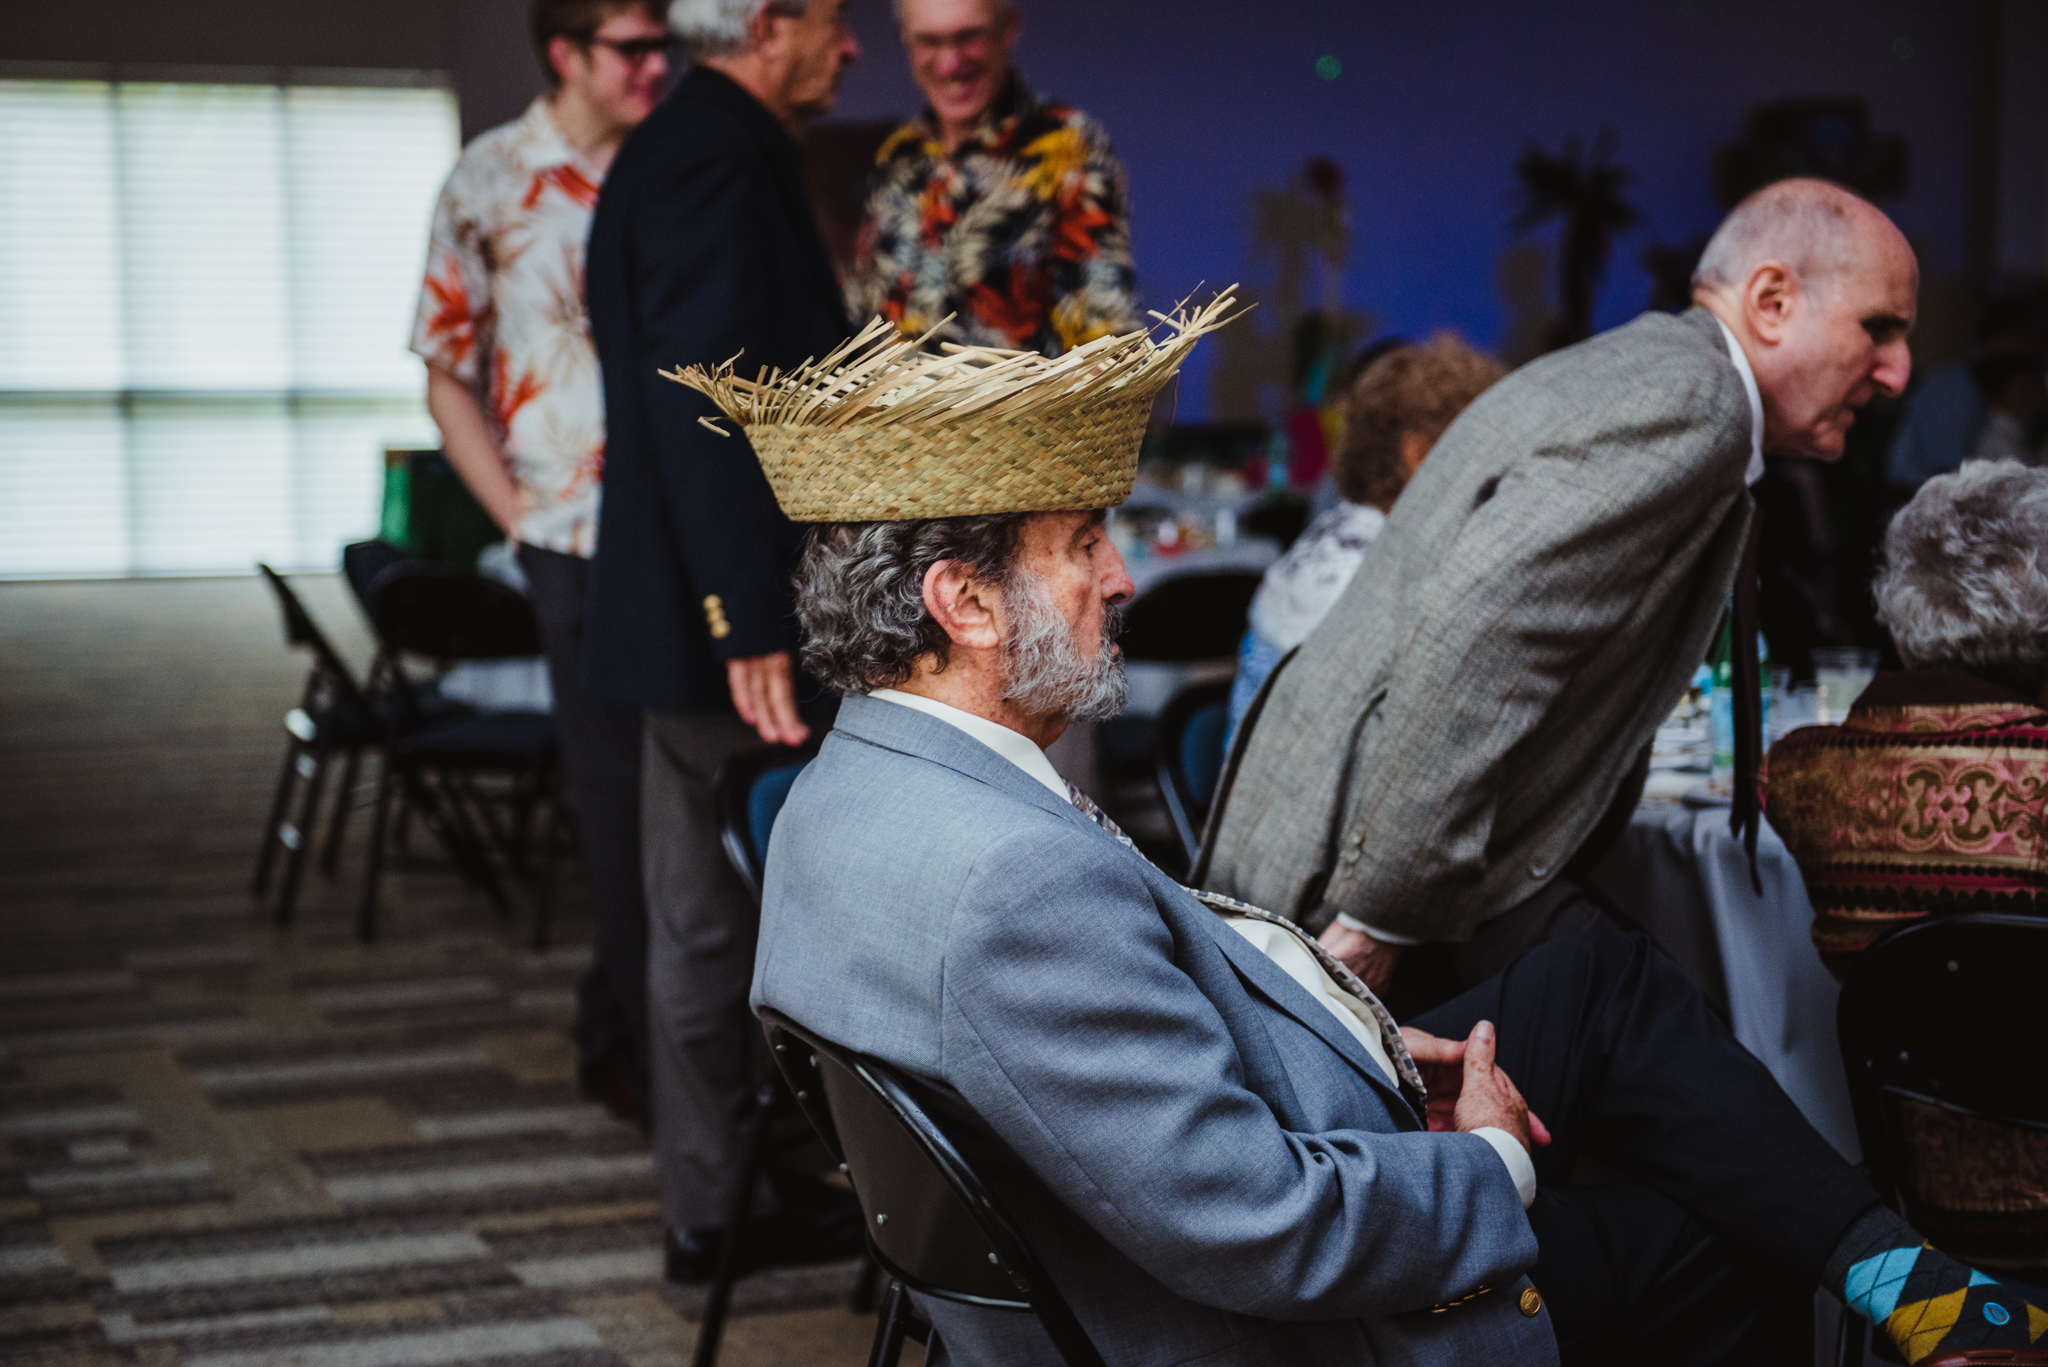 wearing-a-hula-hat-while-watching-the-dancing-at-the-mitzvah-celebration.jpg